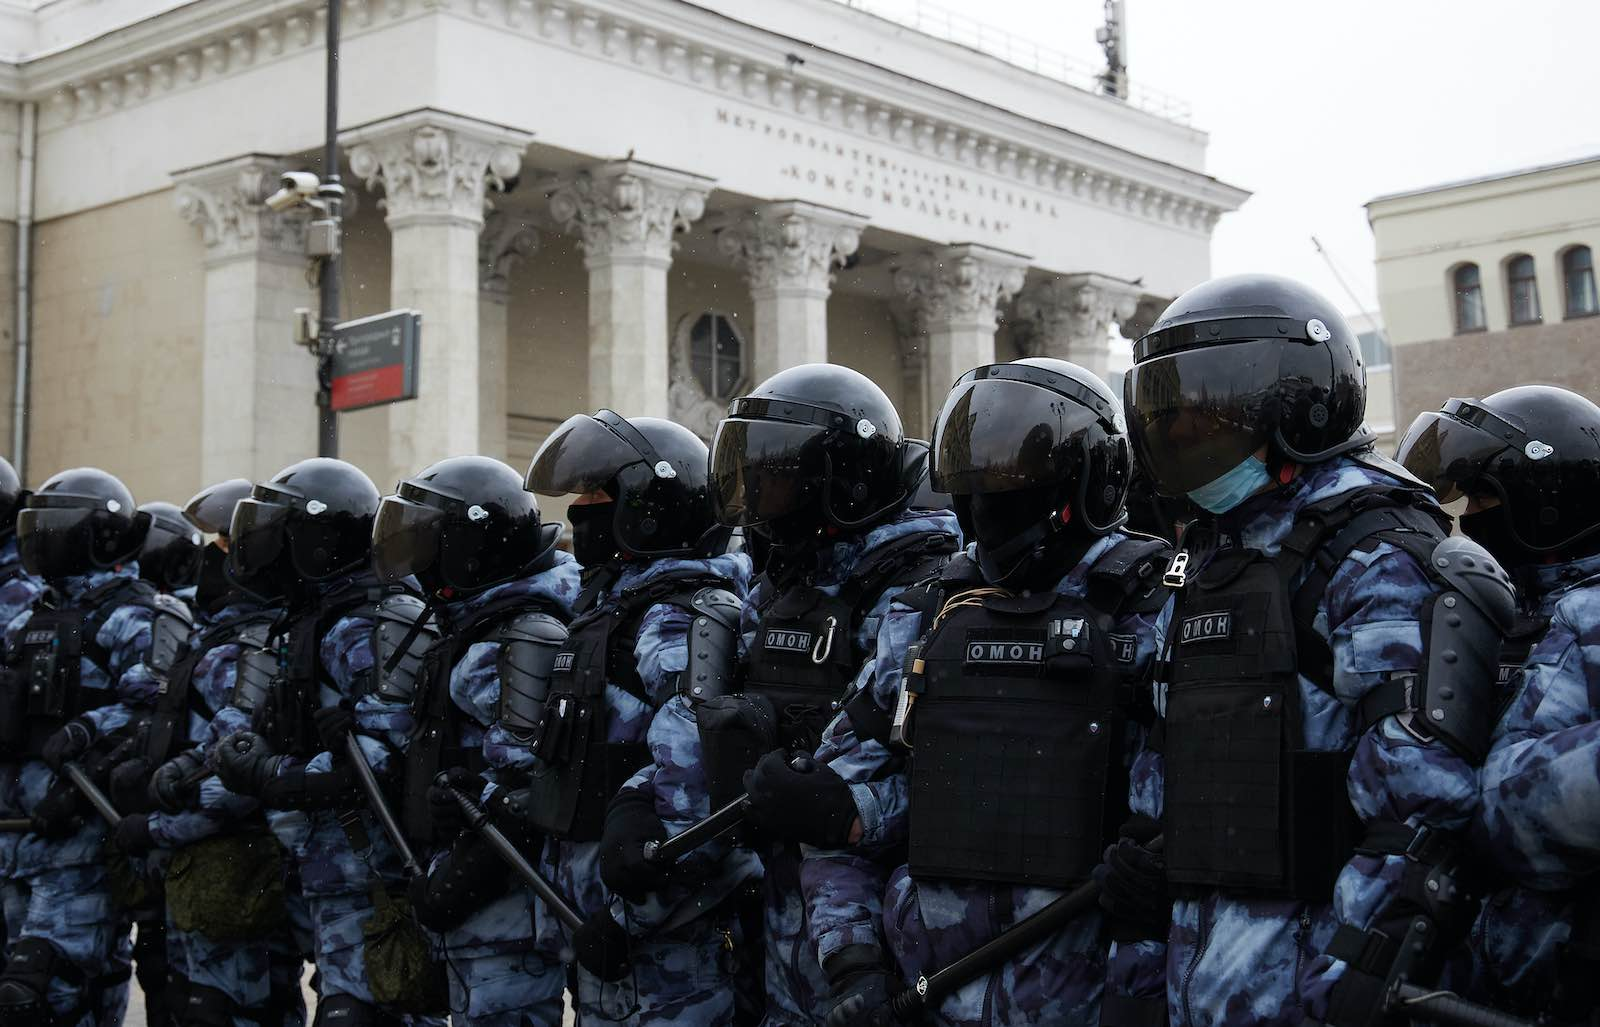 Riot police stand guard during a rally in support of jailed opposition leader Alexei Navalny, Moscow, 31 January 2021 (Oleg Nikishin/Getty Images)